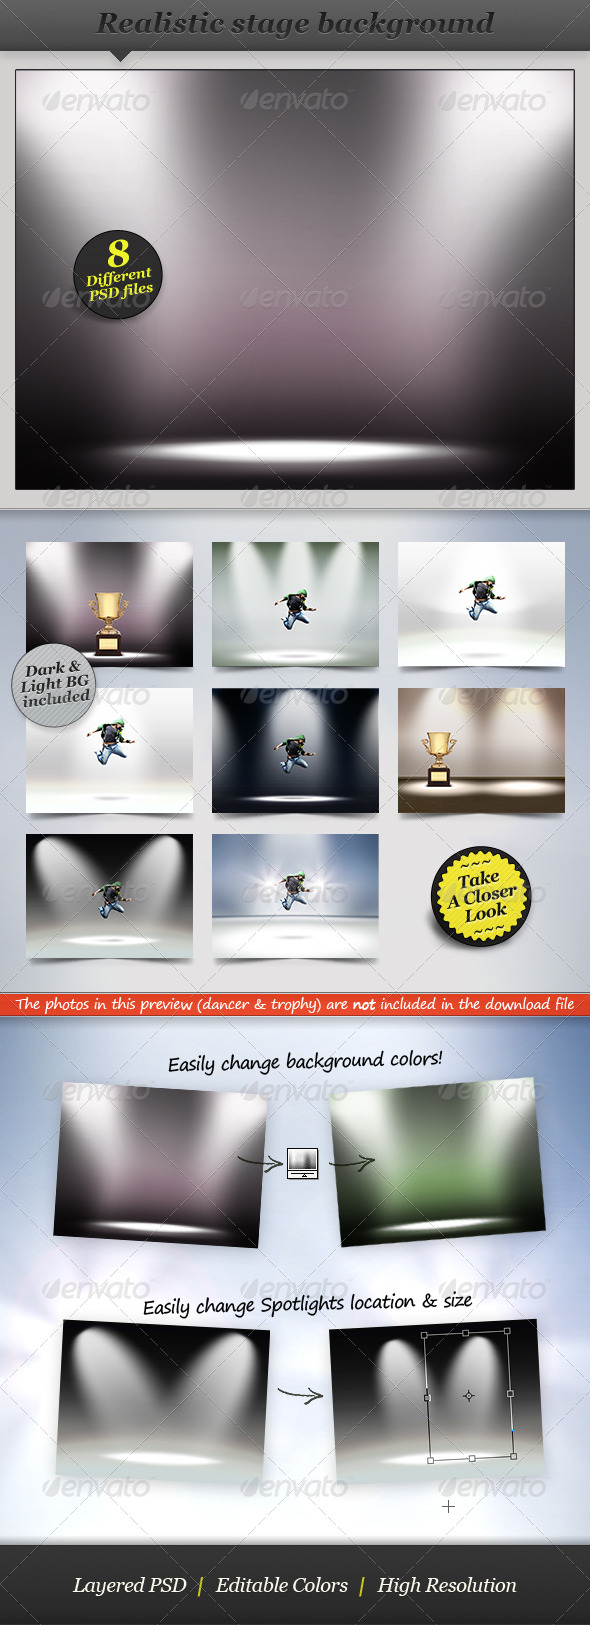 Spotlight Background - Product Showcase Display - Backgrounds Graphics